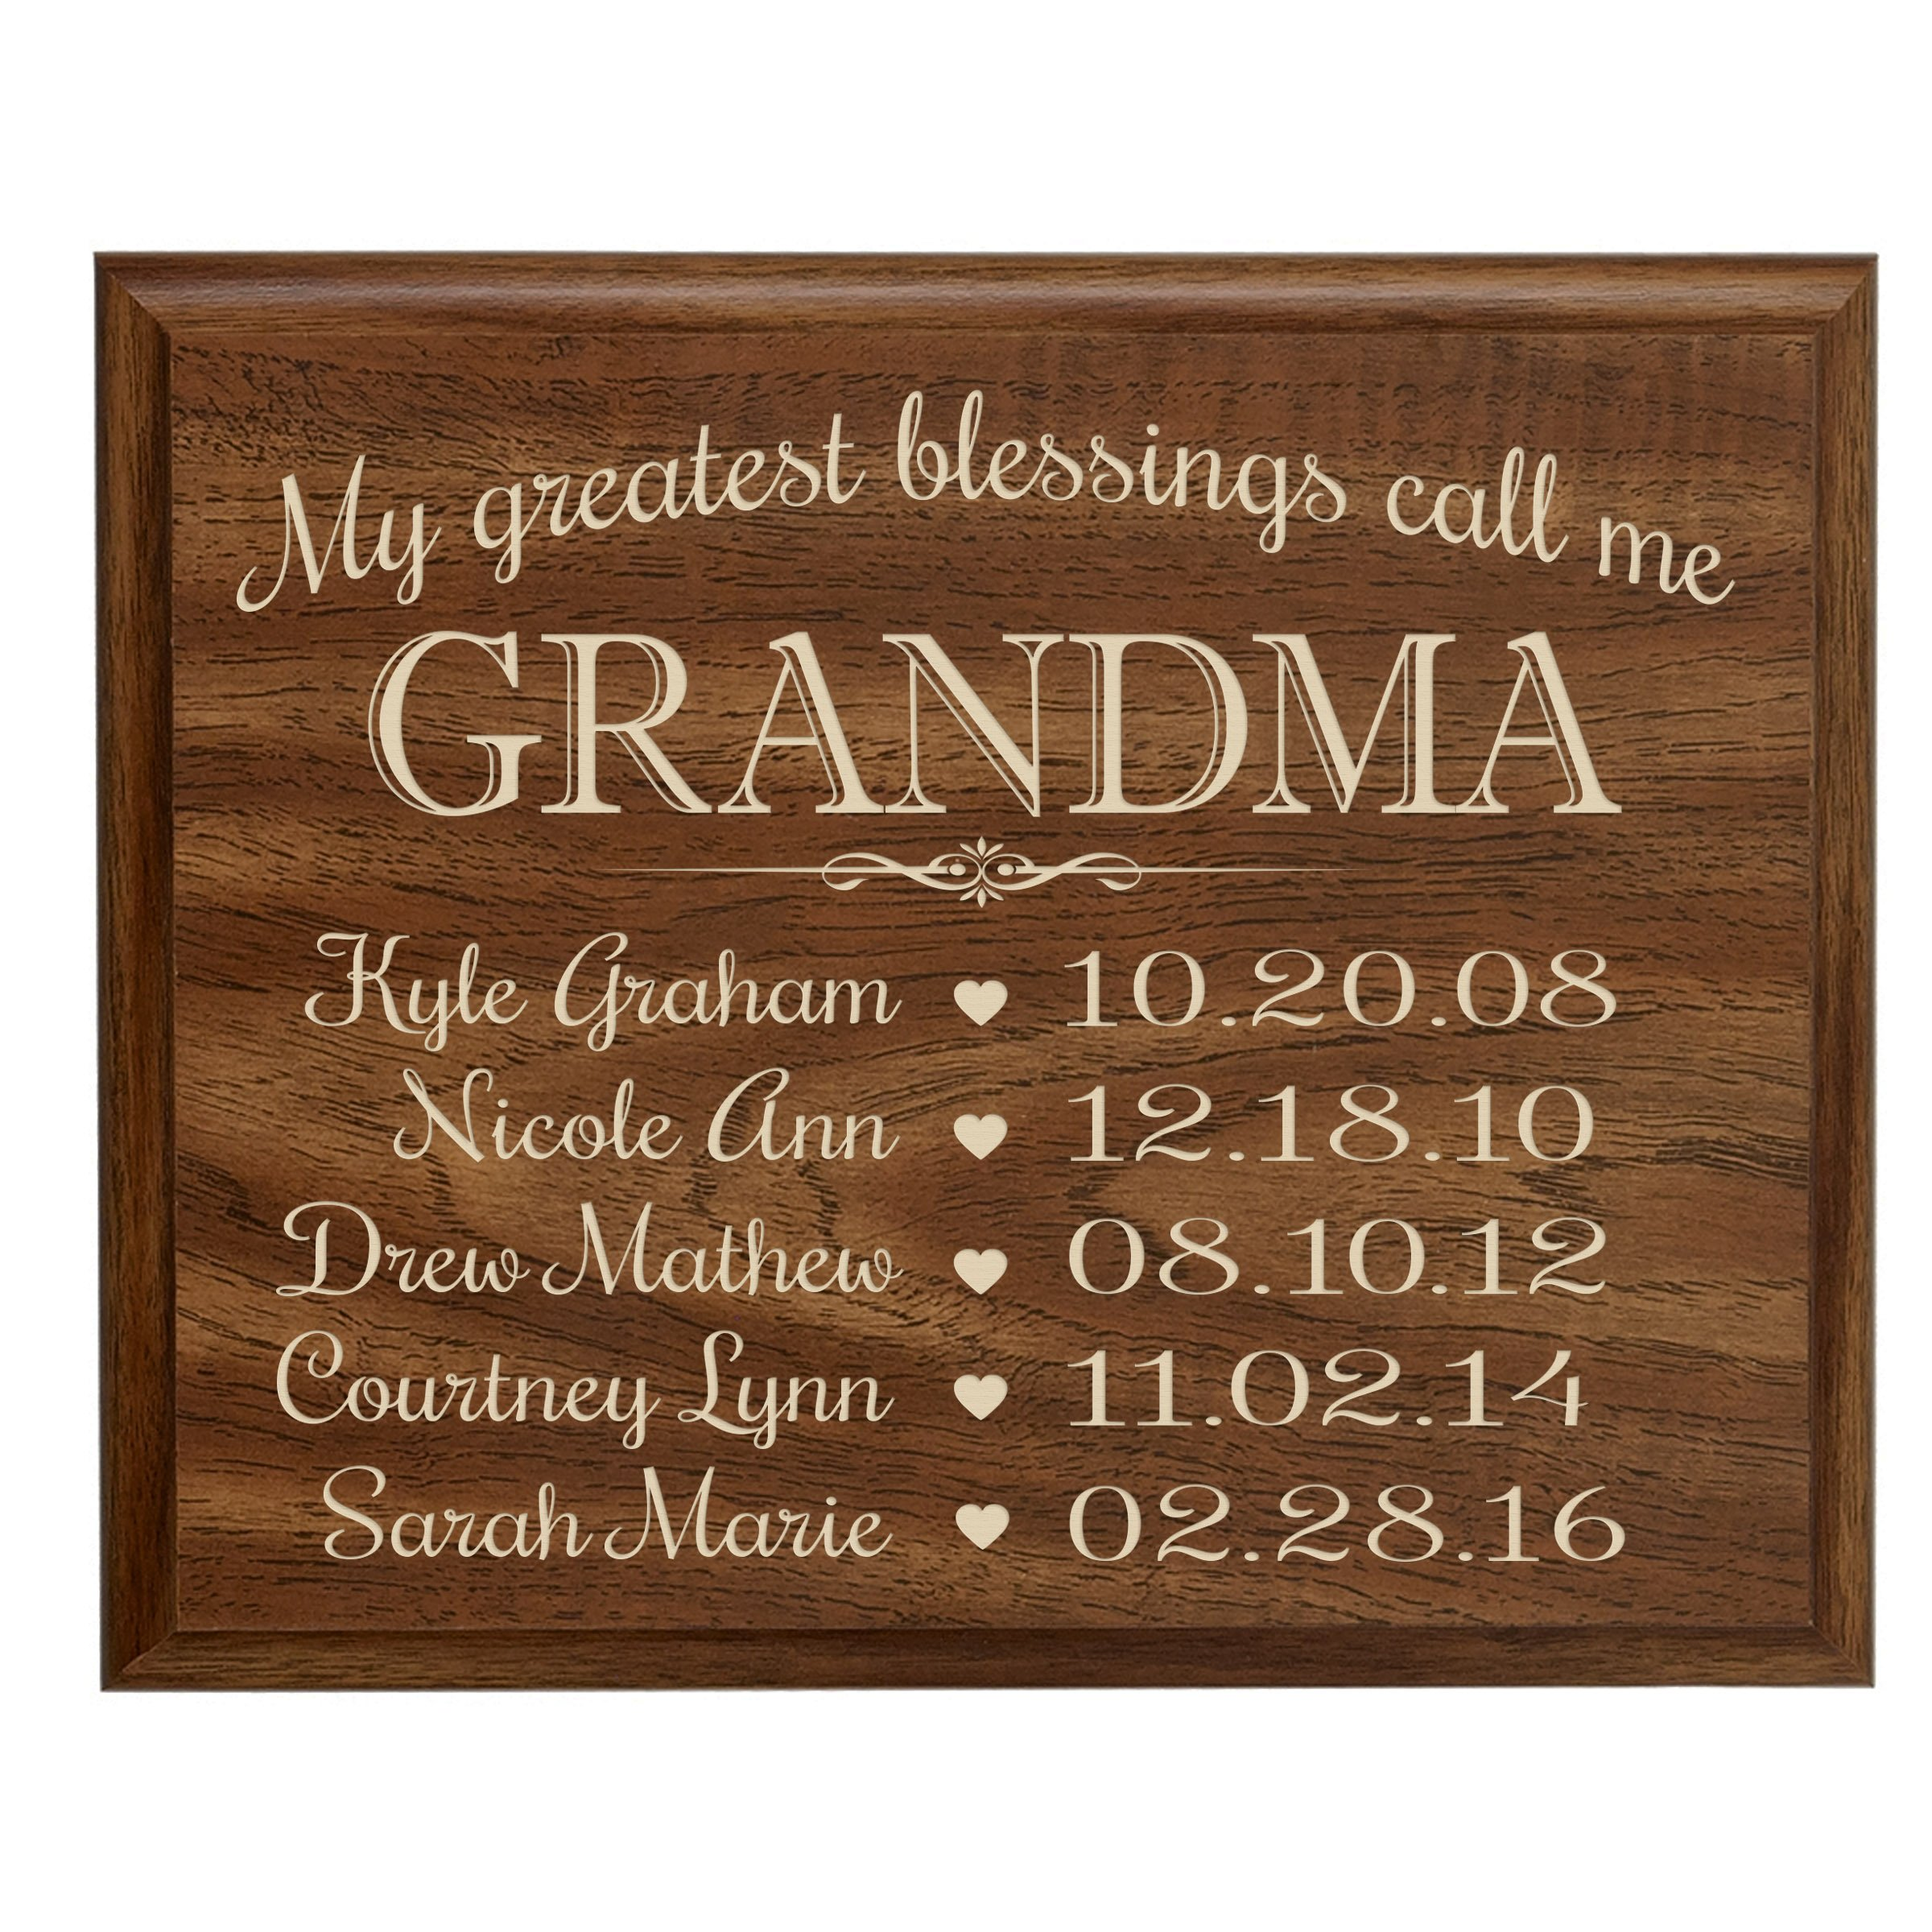 Personalized Gifts for Grandma with Family Established Year plaque with children's names and birth date dates to remember My Greatest blessings call me Grandma by LifeSong Milestones (9x12, Walnut)